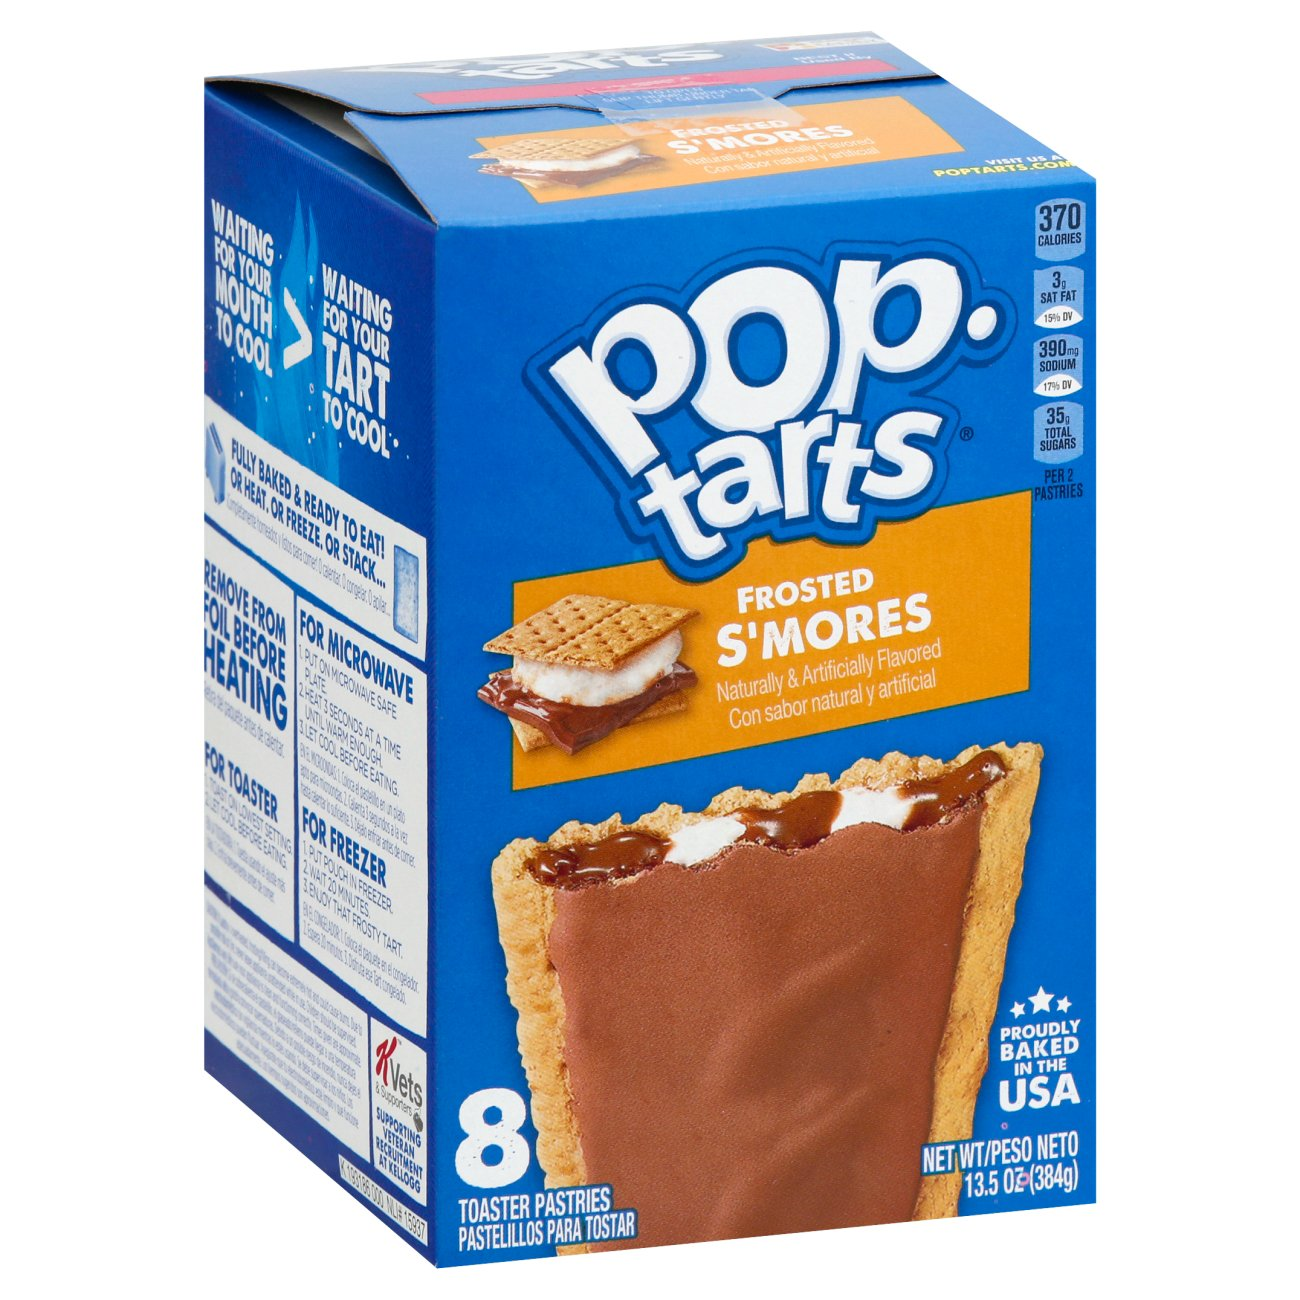 Pop Tarts Breakfast Toaster Pastries Frosted S Mores Shop Toaster Pastries At H E B